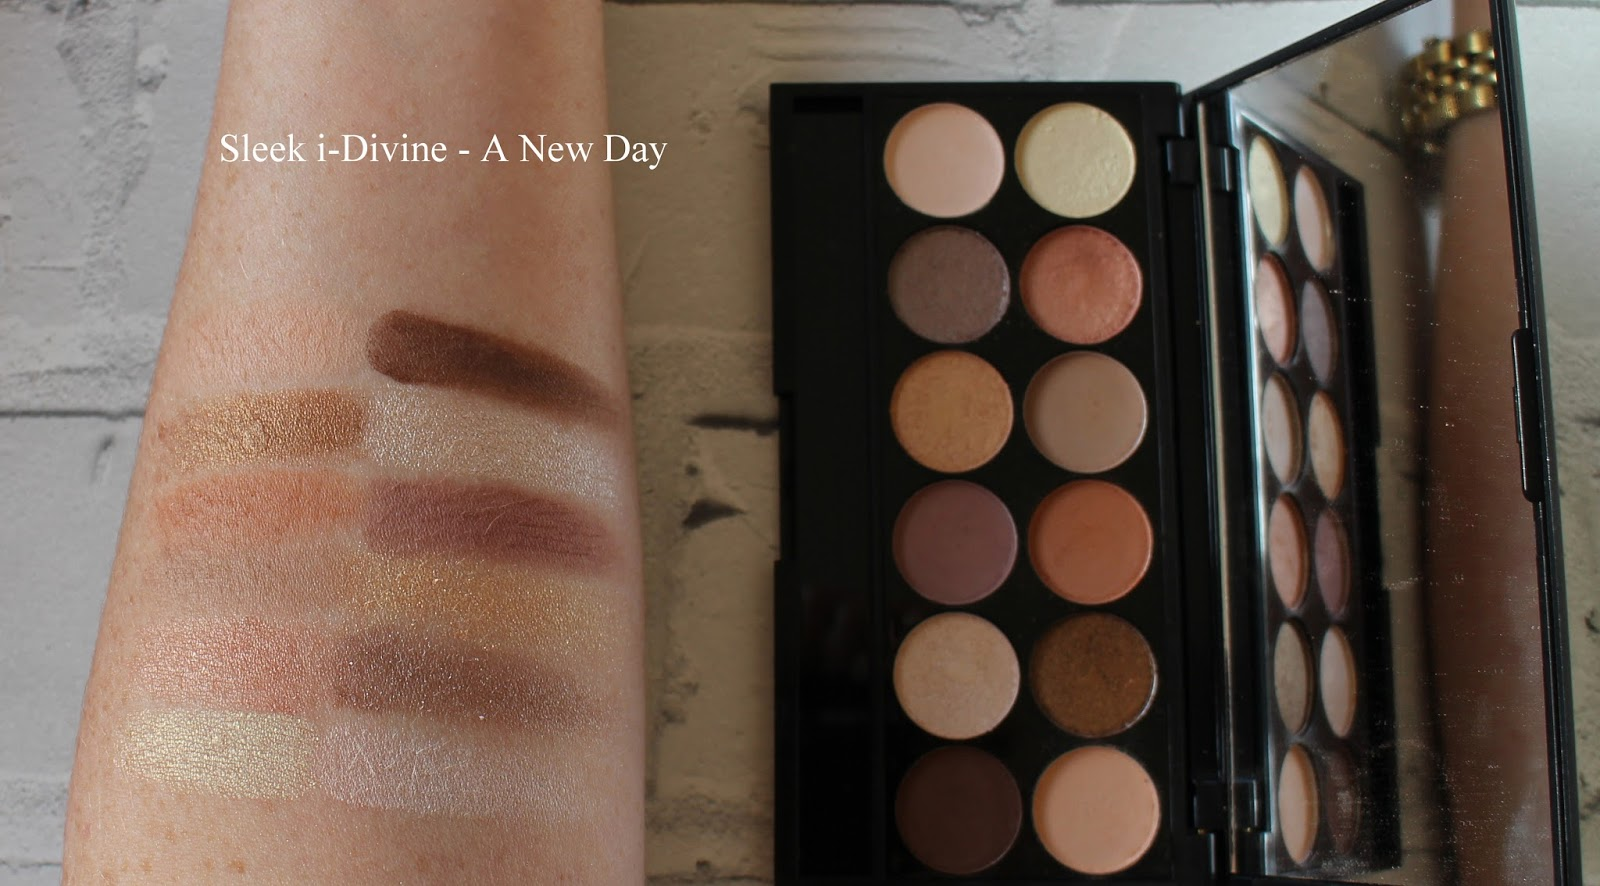 i-Divine Palette - A New Day by sleek #7